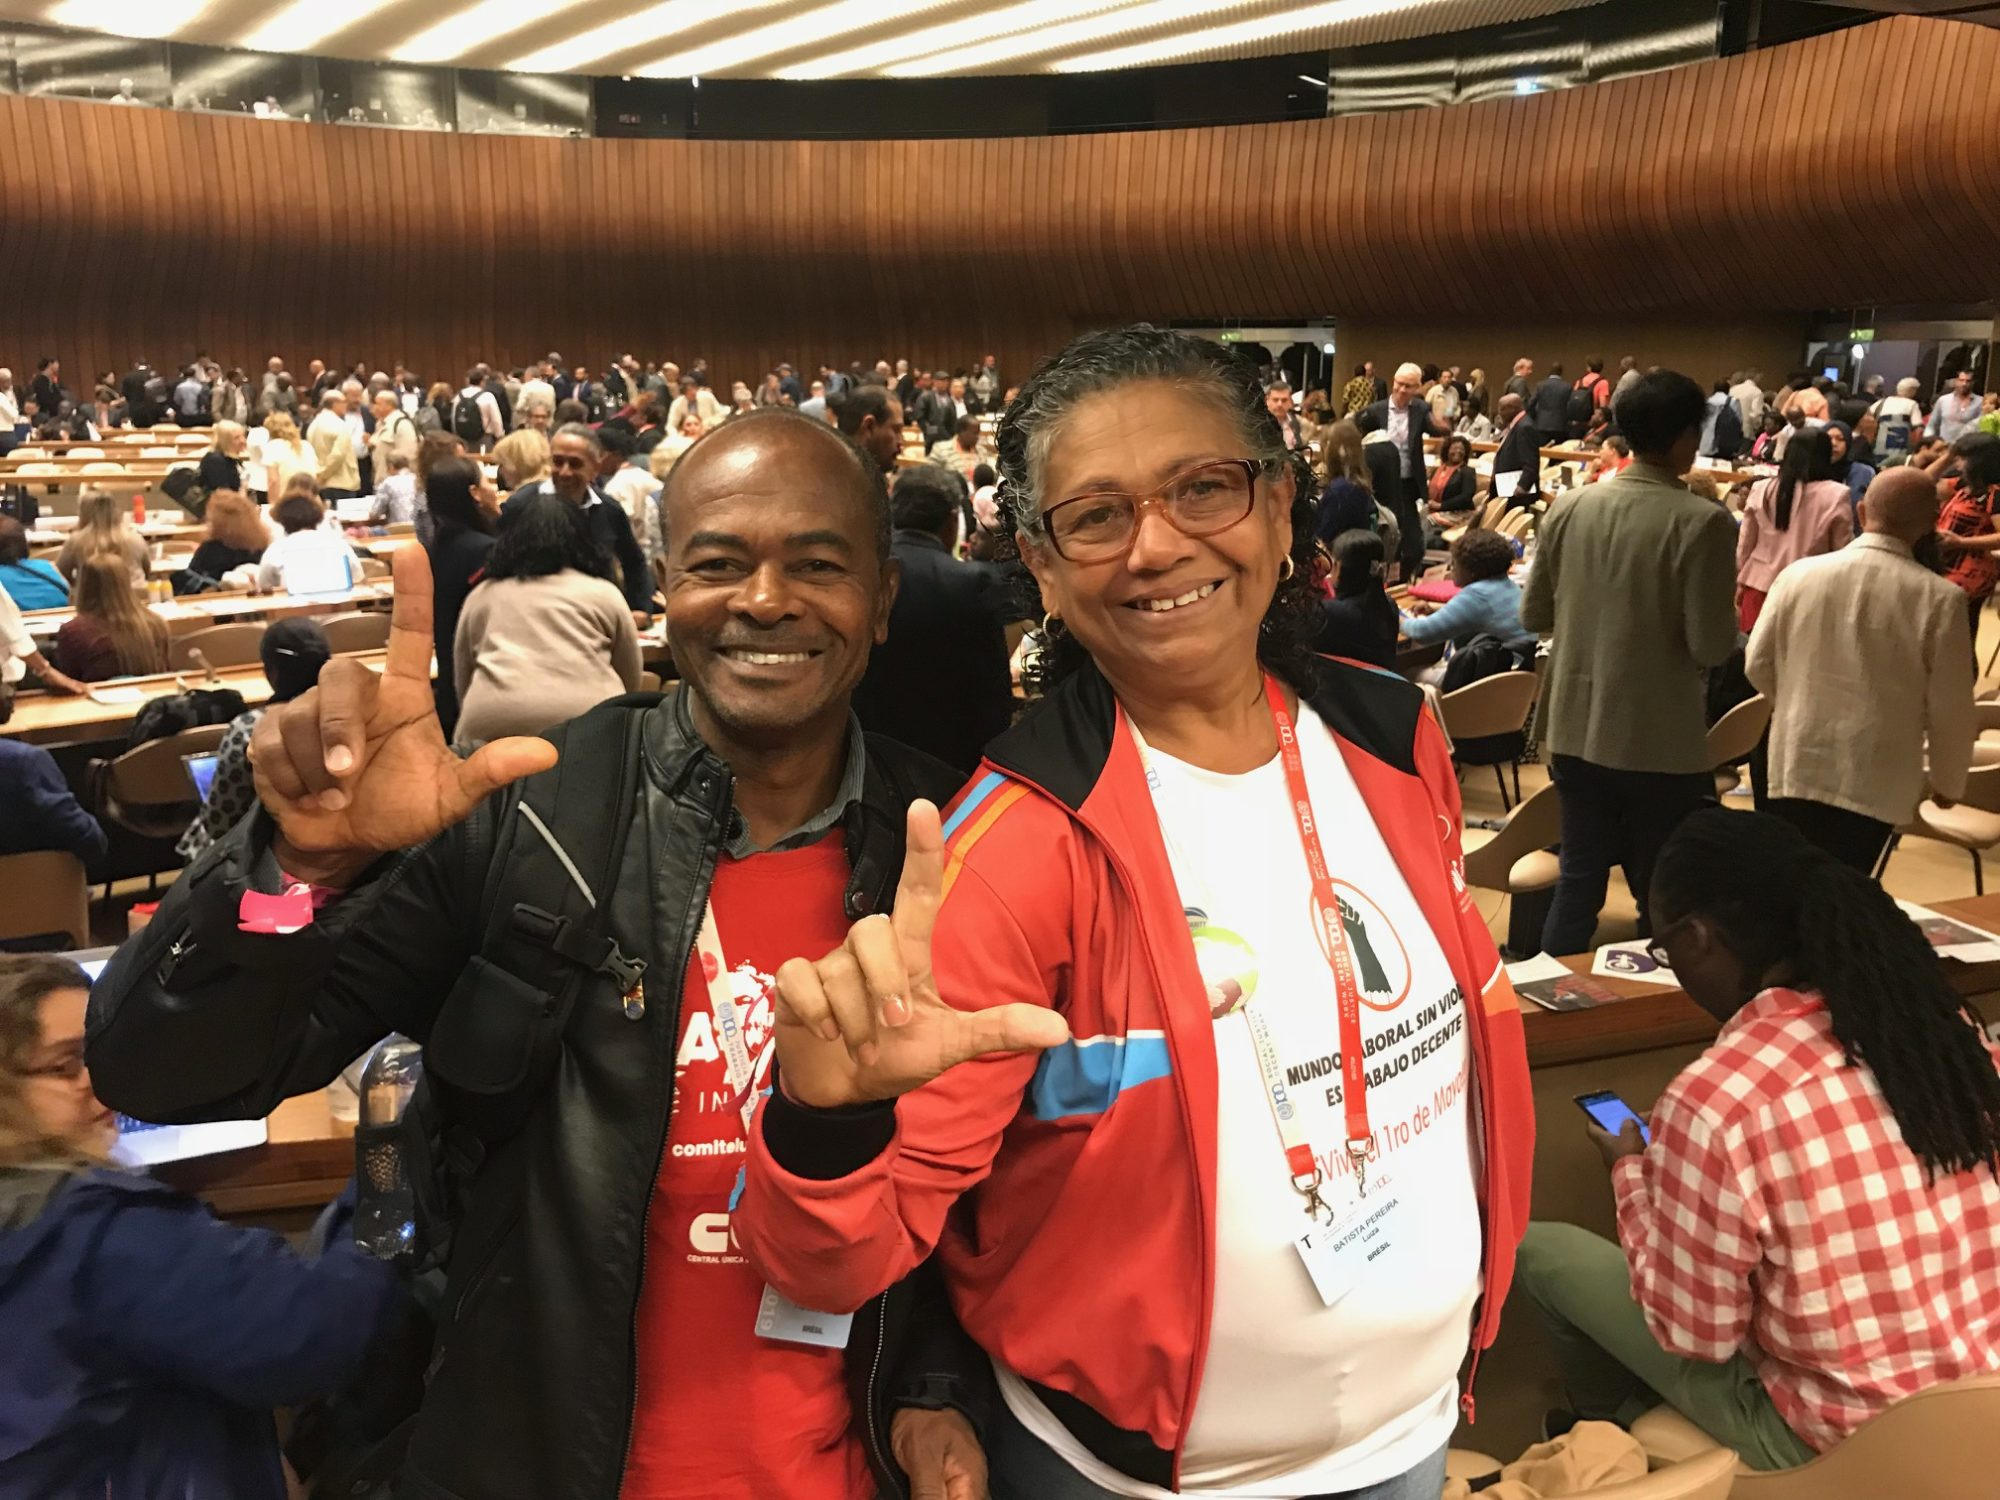 Brazil,, domestic workers, ILO Convention 190, worker rights, gender equality, Solidarity Center